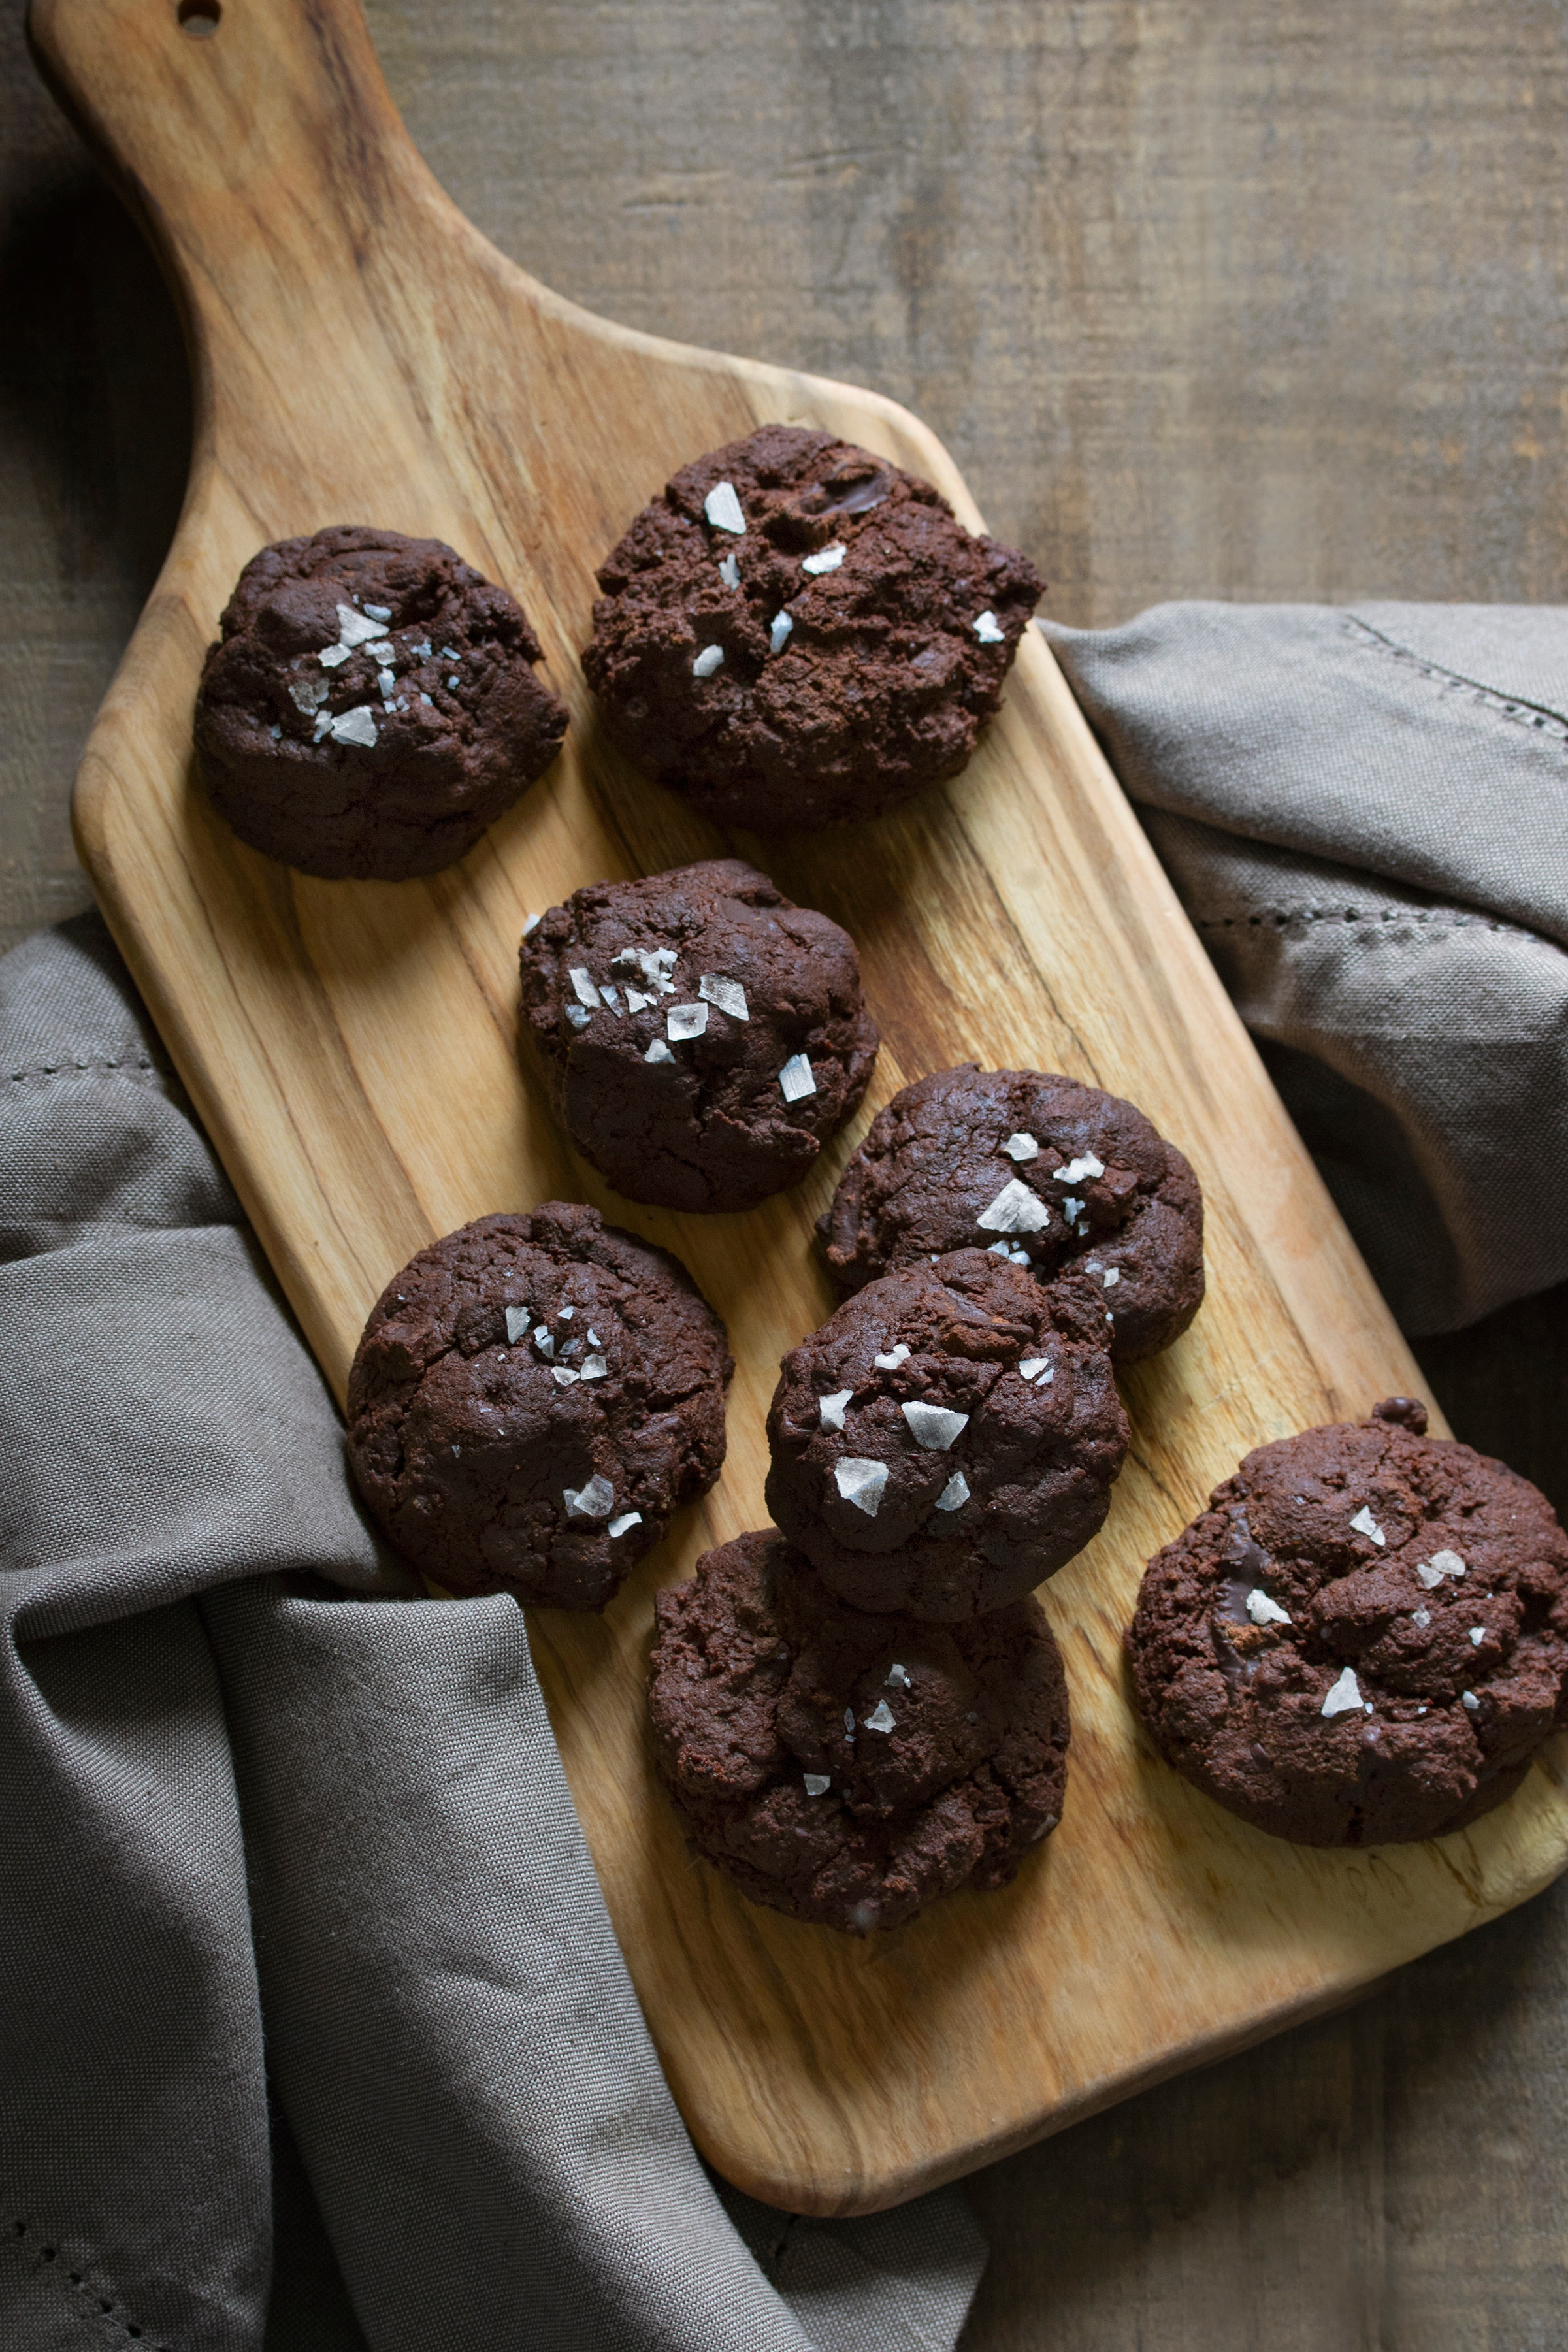 Chocolate chip cookies with flake salt on cutting board with cloth napkin on table